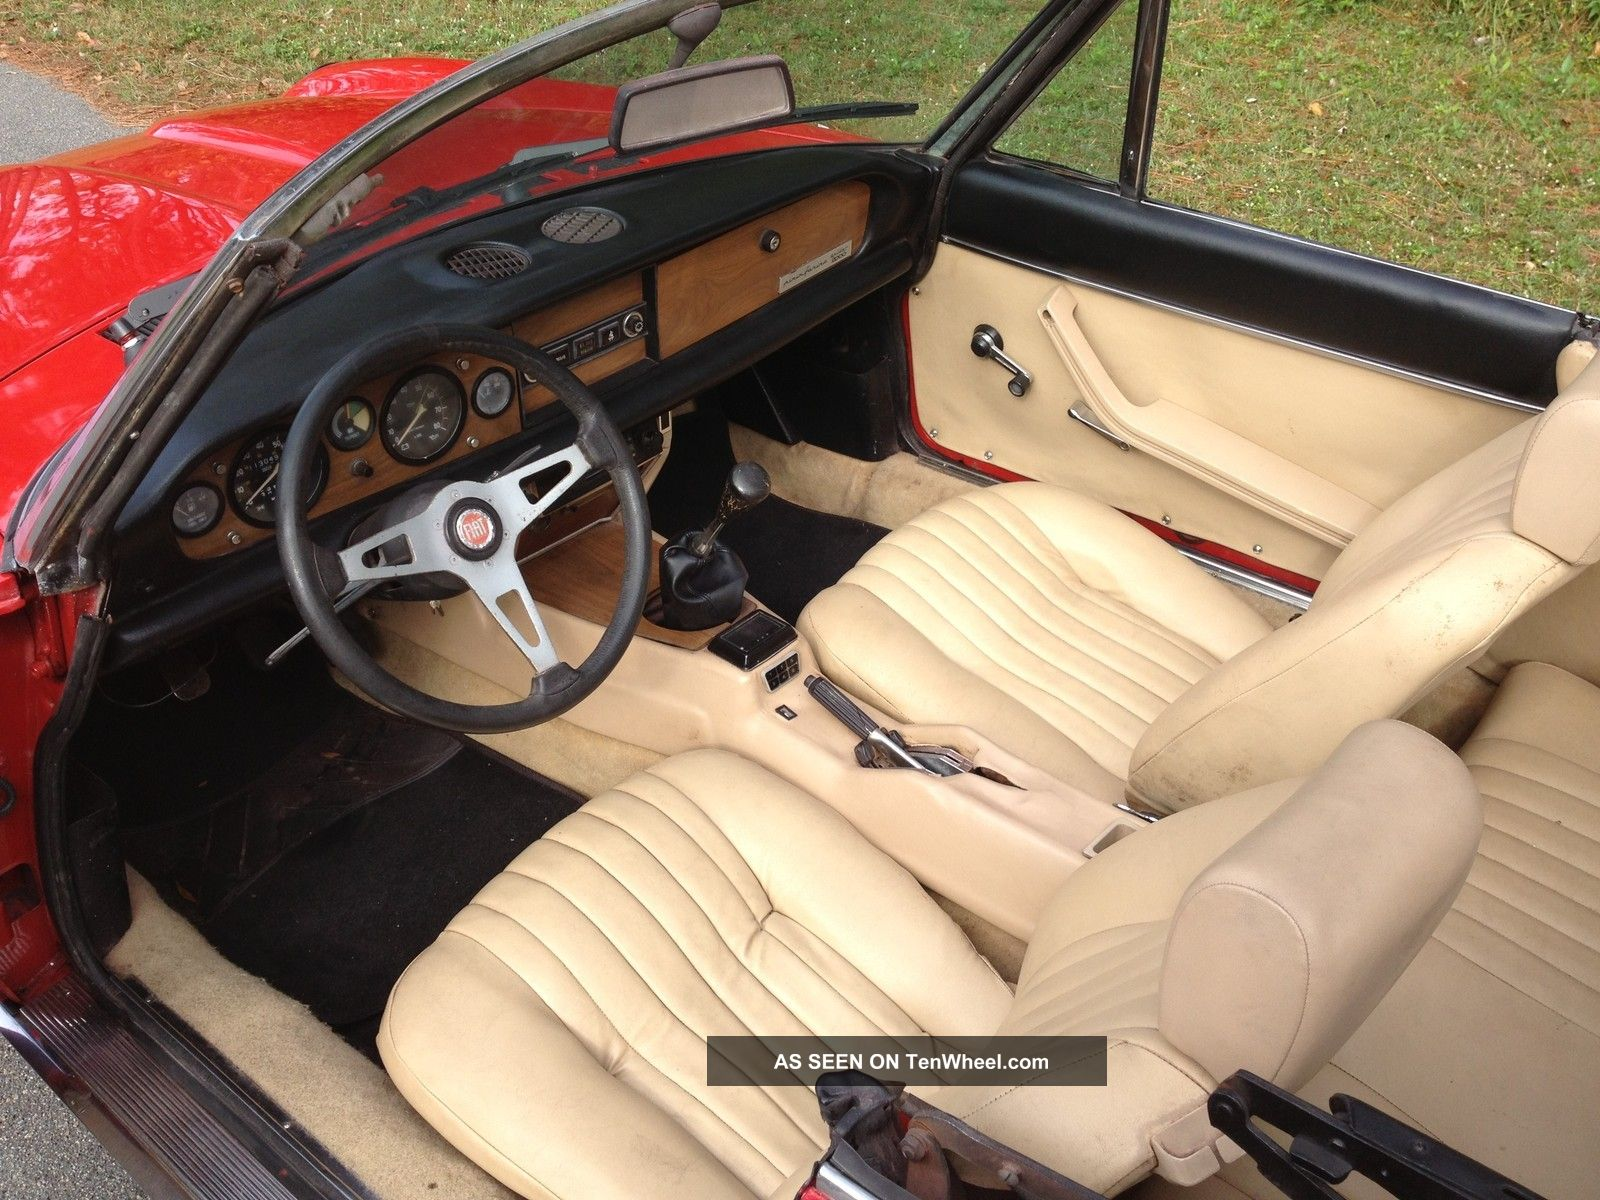 1981 Fiat Spider 124 Convertible Fuel Injection 2000 Cc Red Beauty In Florida